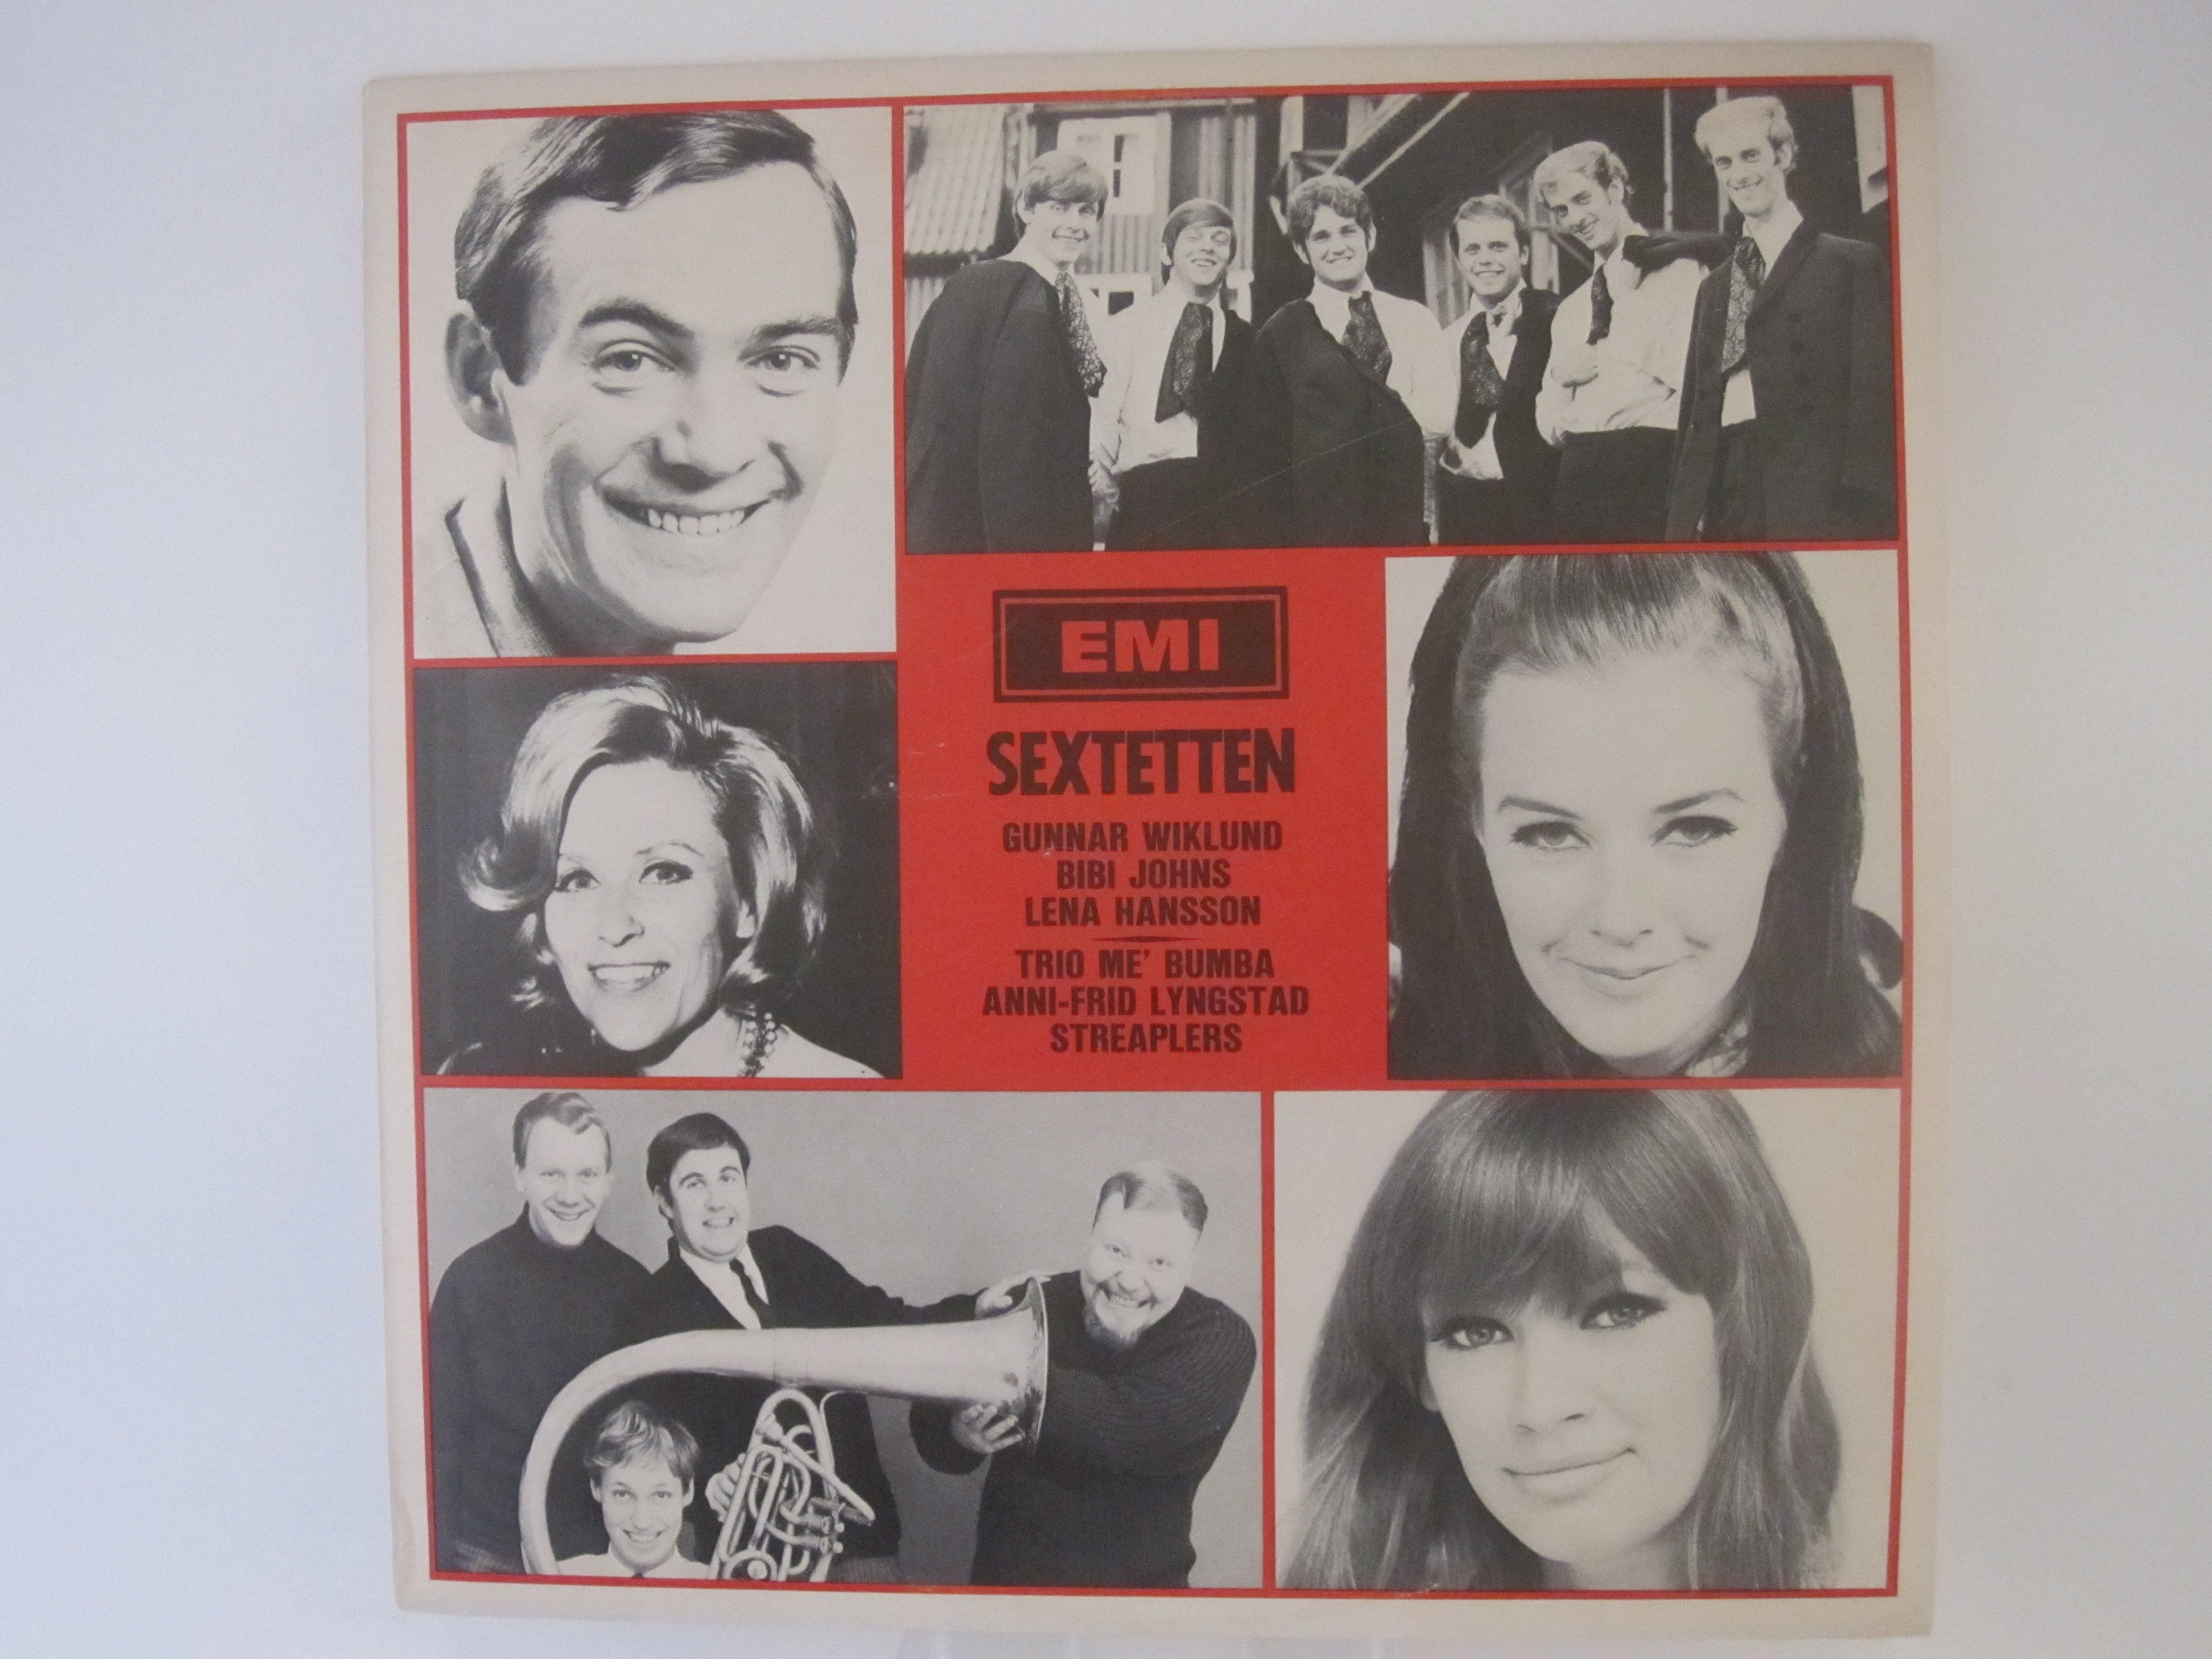 EMI-Sextetten : ANNI-FRID LYNGSTAD + 5 other artists